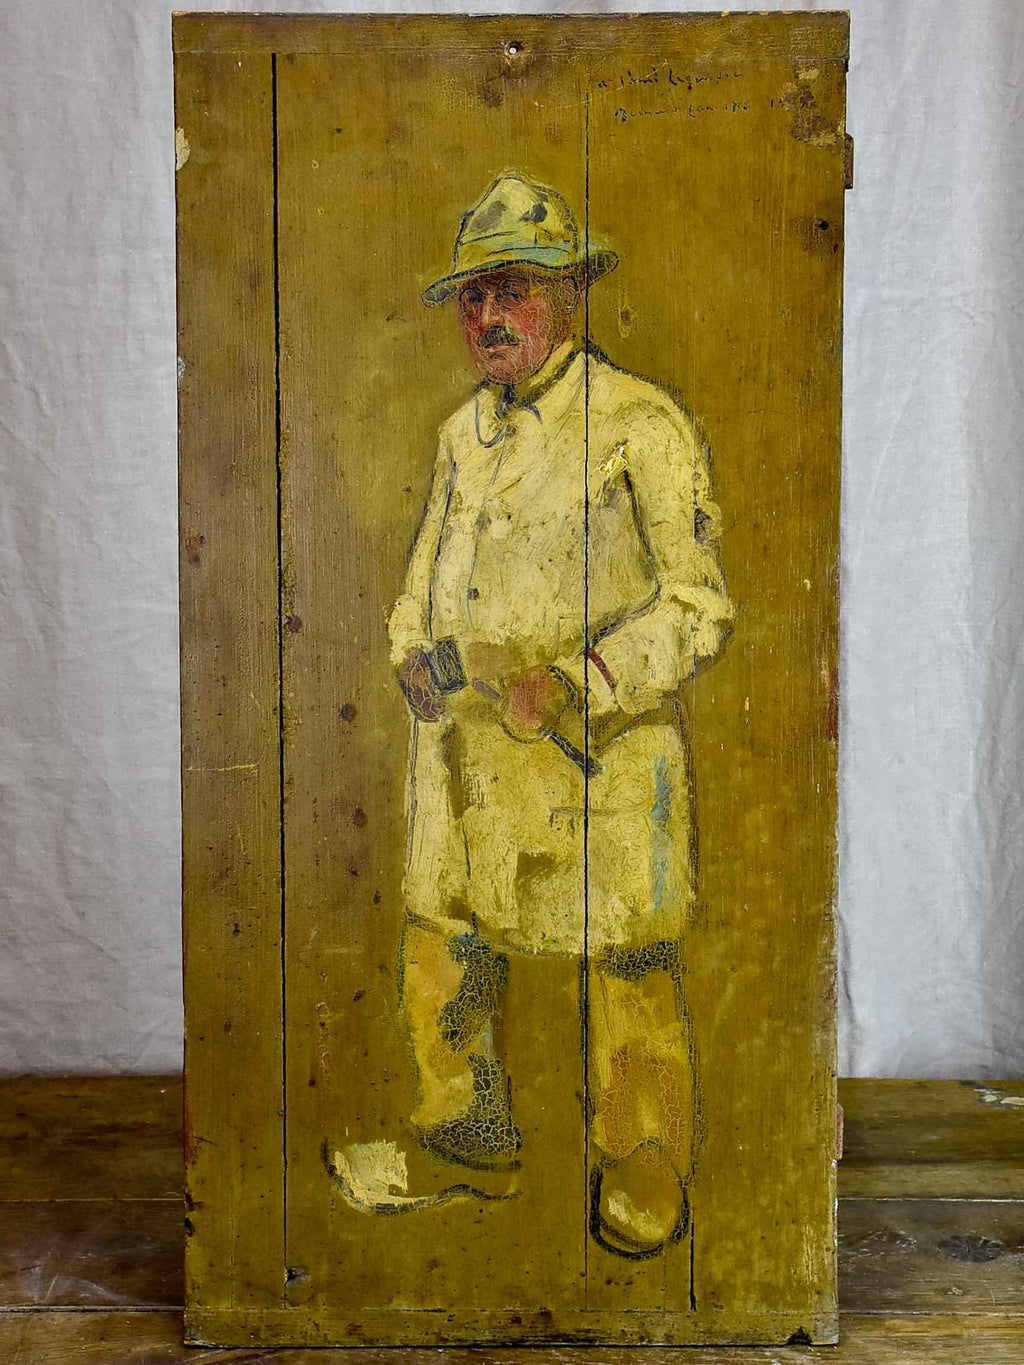 Antique French painting of a man - painted on a shutter